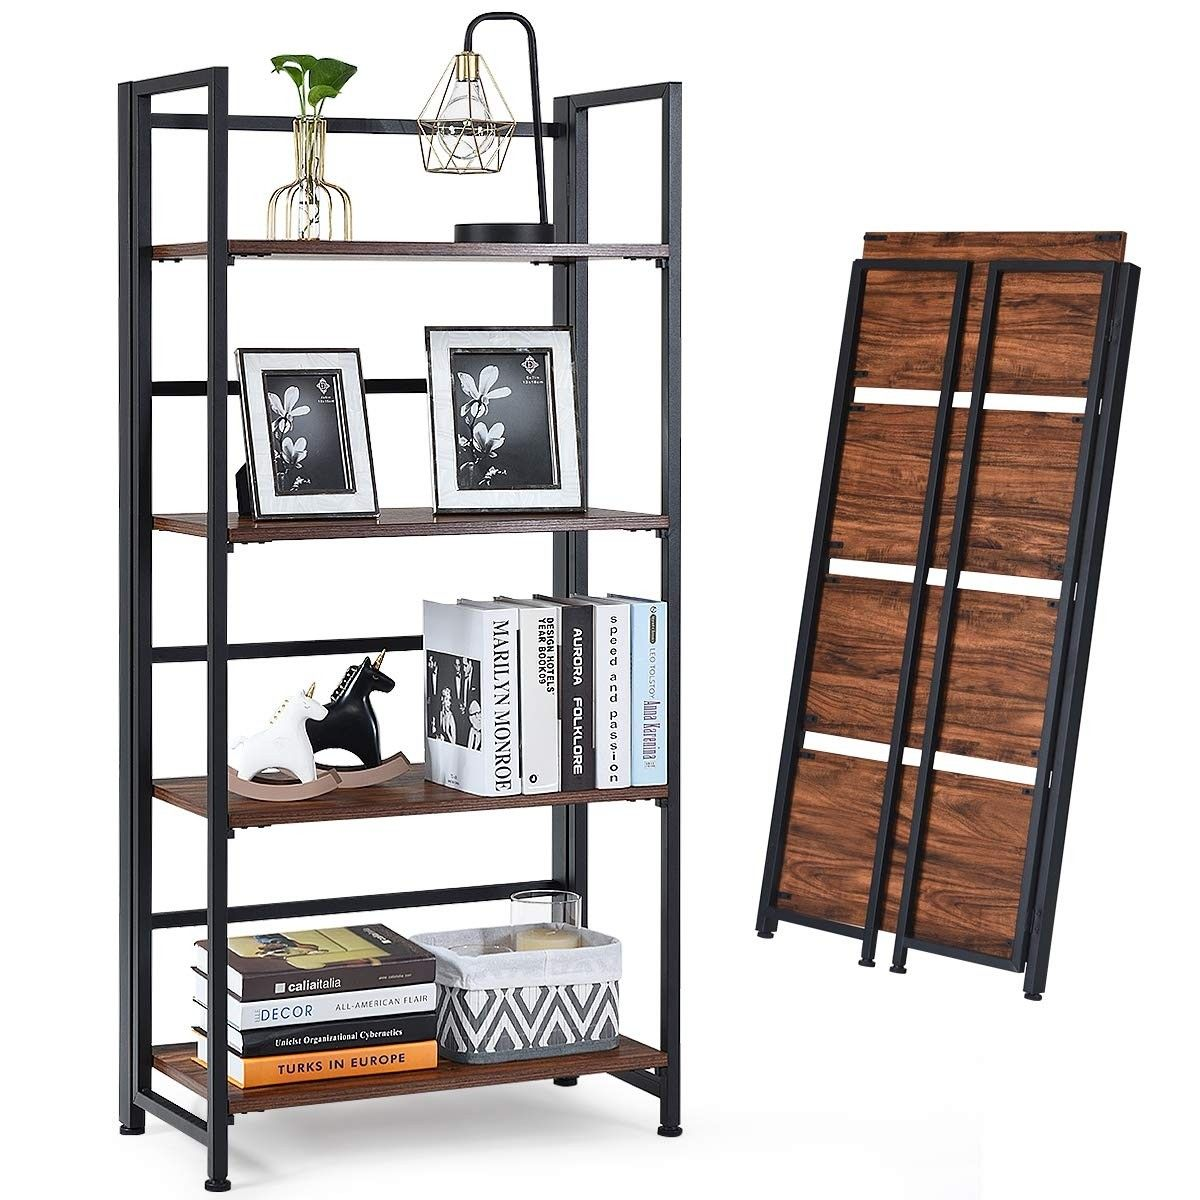 4 Tier Folding Bookshelf Foldable Portable Metal Storage 75 95 Free Shipping This Is The Foldable 4 Tier Bookshelf Metal Storage Shelves Bookshelves Shelves